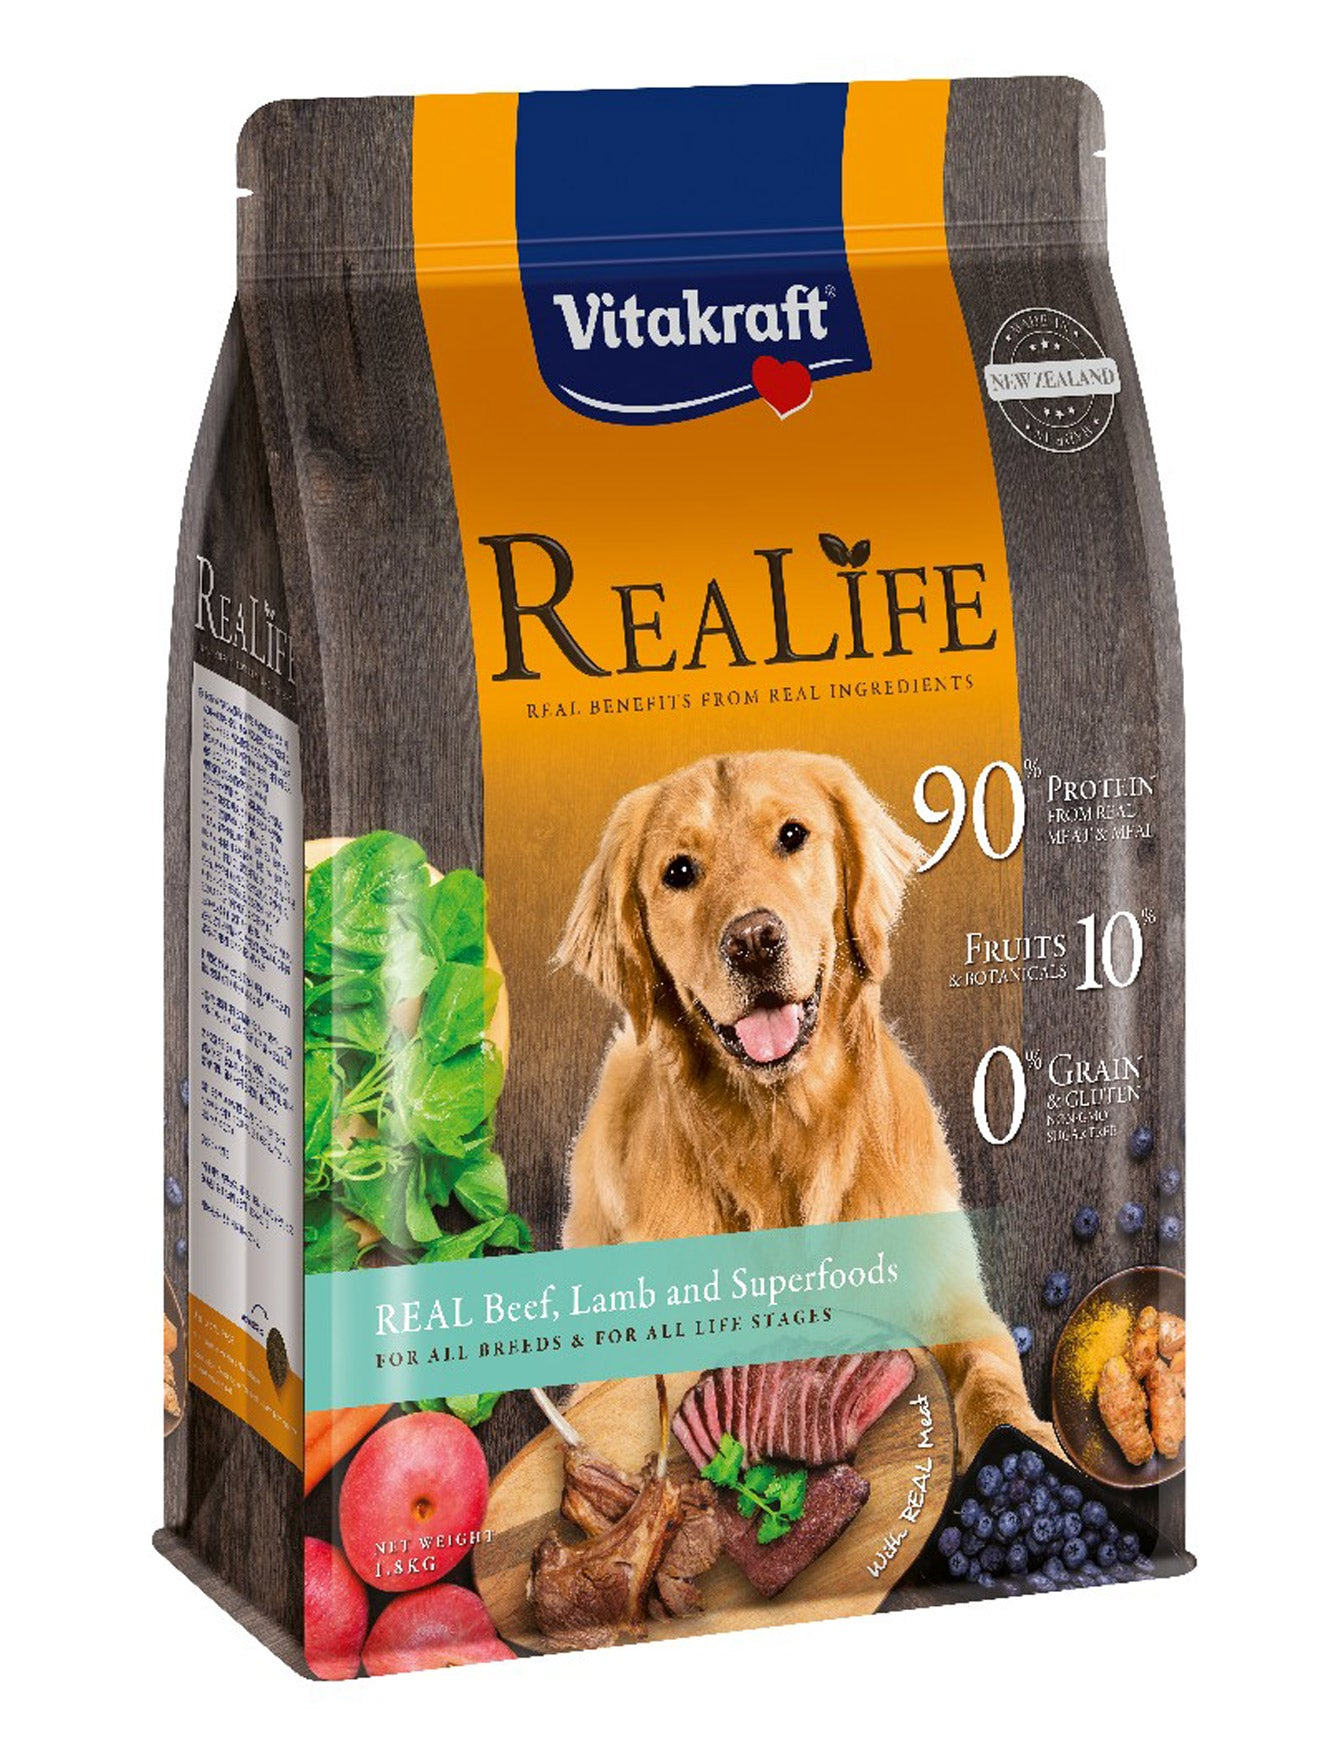 Vitakraft ReaLife Real Beef, Lamb & Superfoods Dog Dry Food | Perromart Online Pet Store Singapore